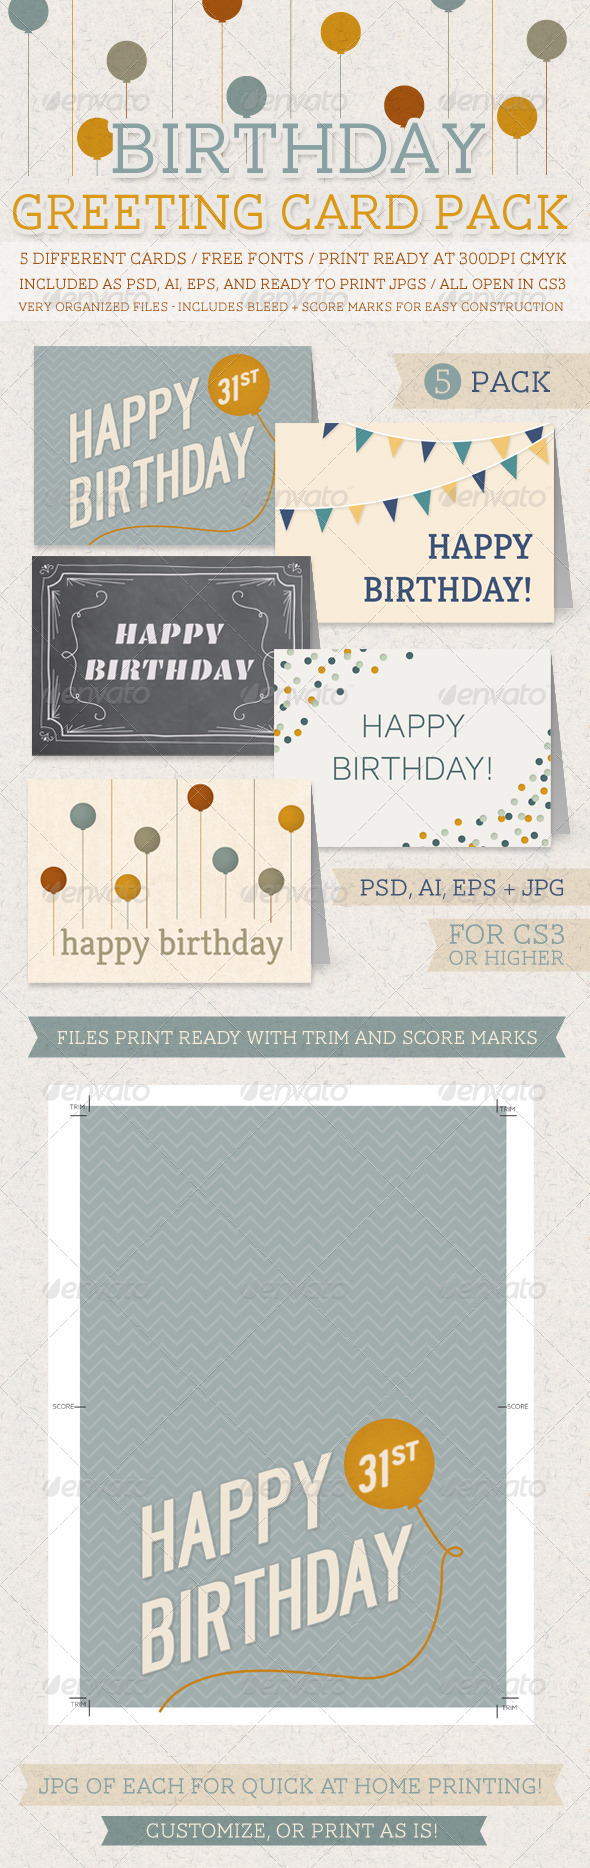 GraphicRiver Birthday Greeting Card Pack 3353884